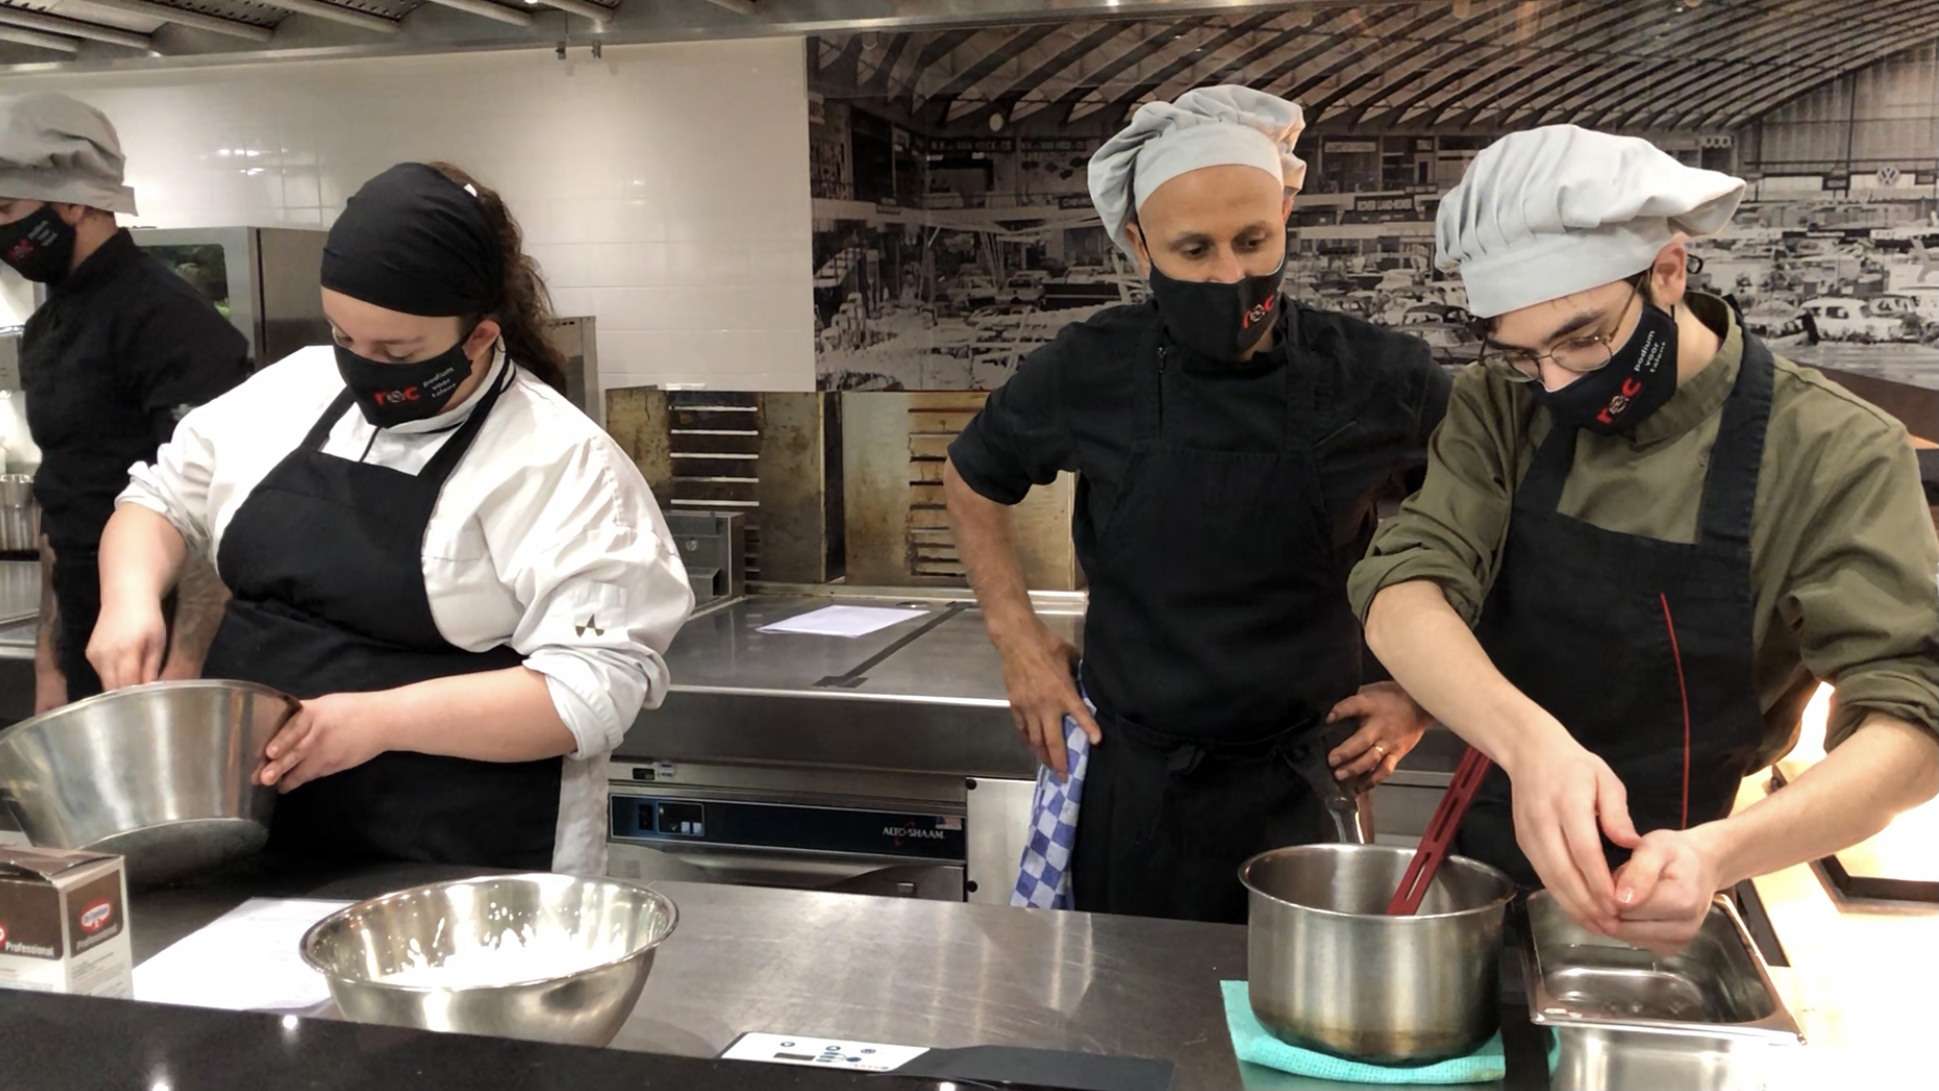 RAI Amsterdam cooks up kitchen space for catering students and hot meals for the homeless